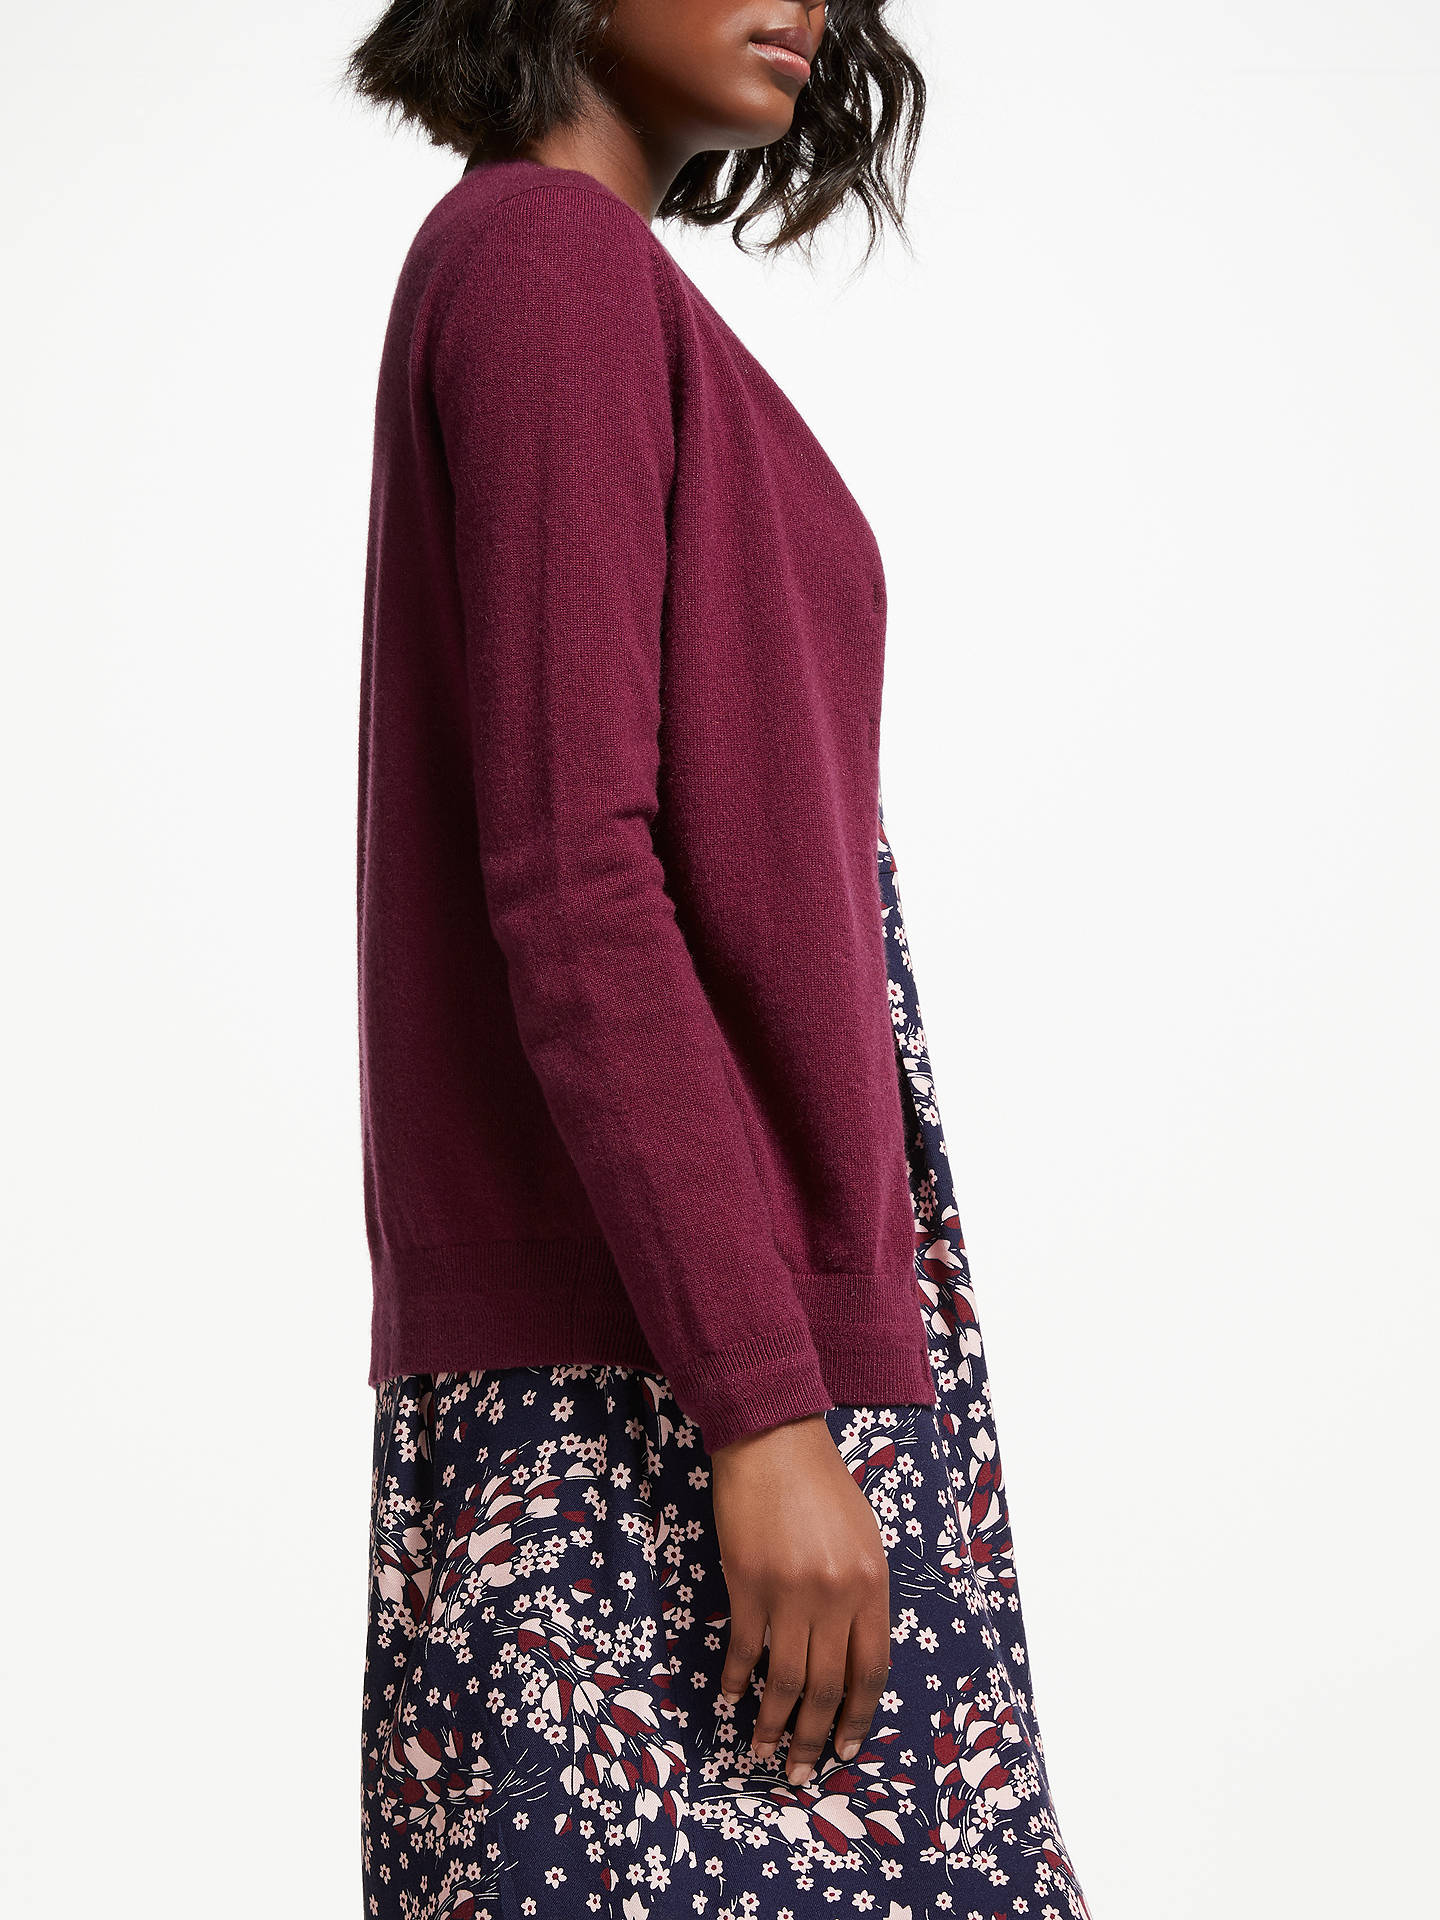 BuyBoden Cashmere Crew Cardigan, Mulled Wine, L Online at johnlewis.com